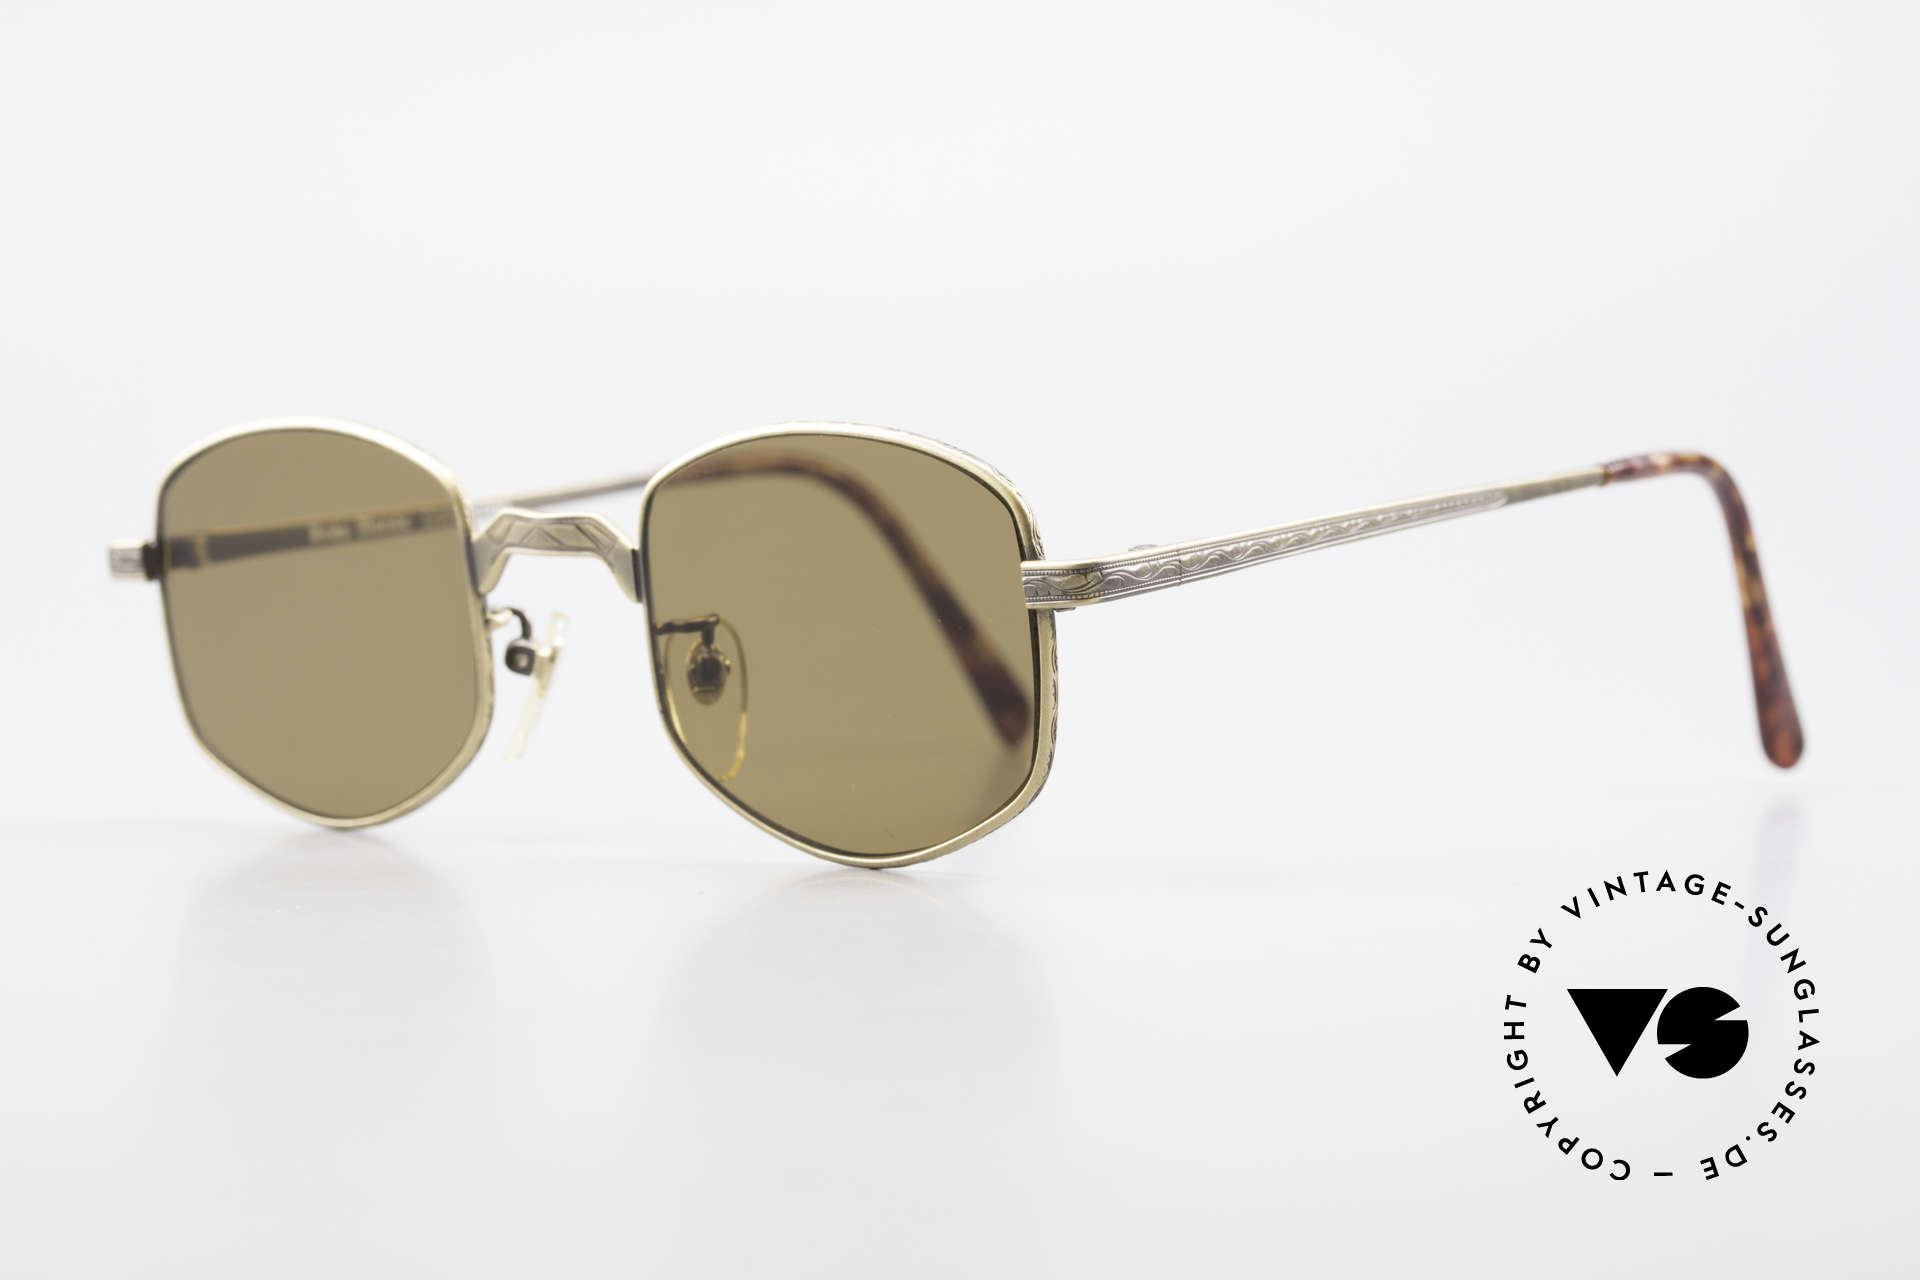 Beau Monde Dover Old 90's Insider Sunglasses, models are named after beautiful places on this world, Made for Men and Women